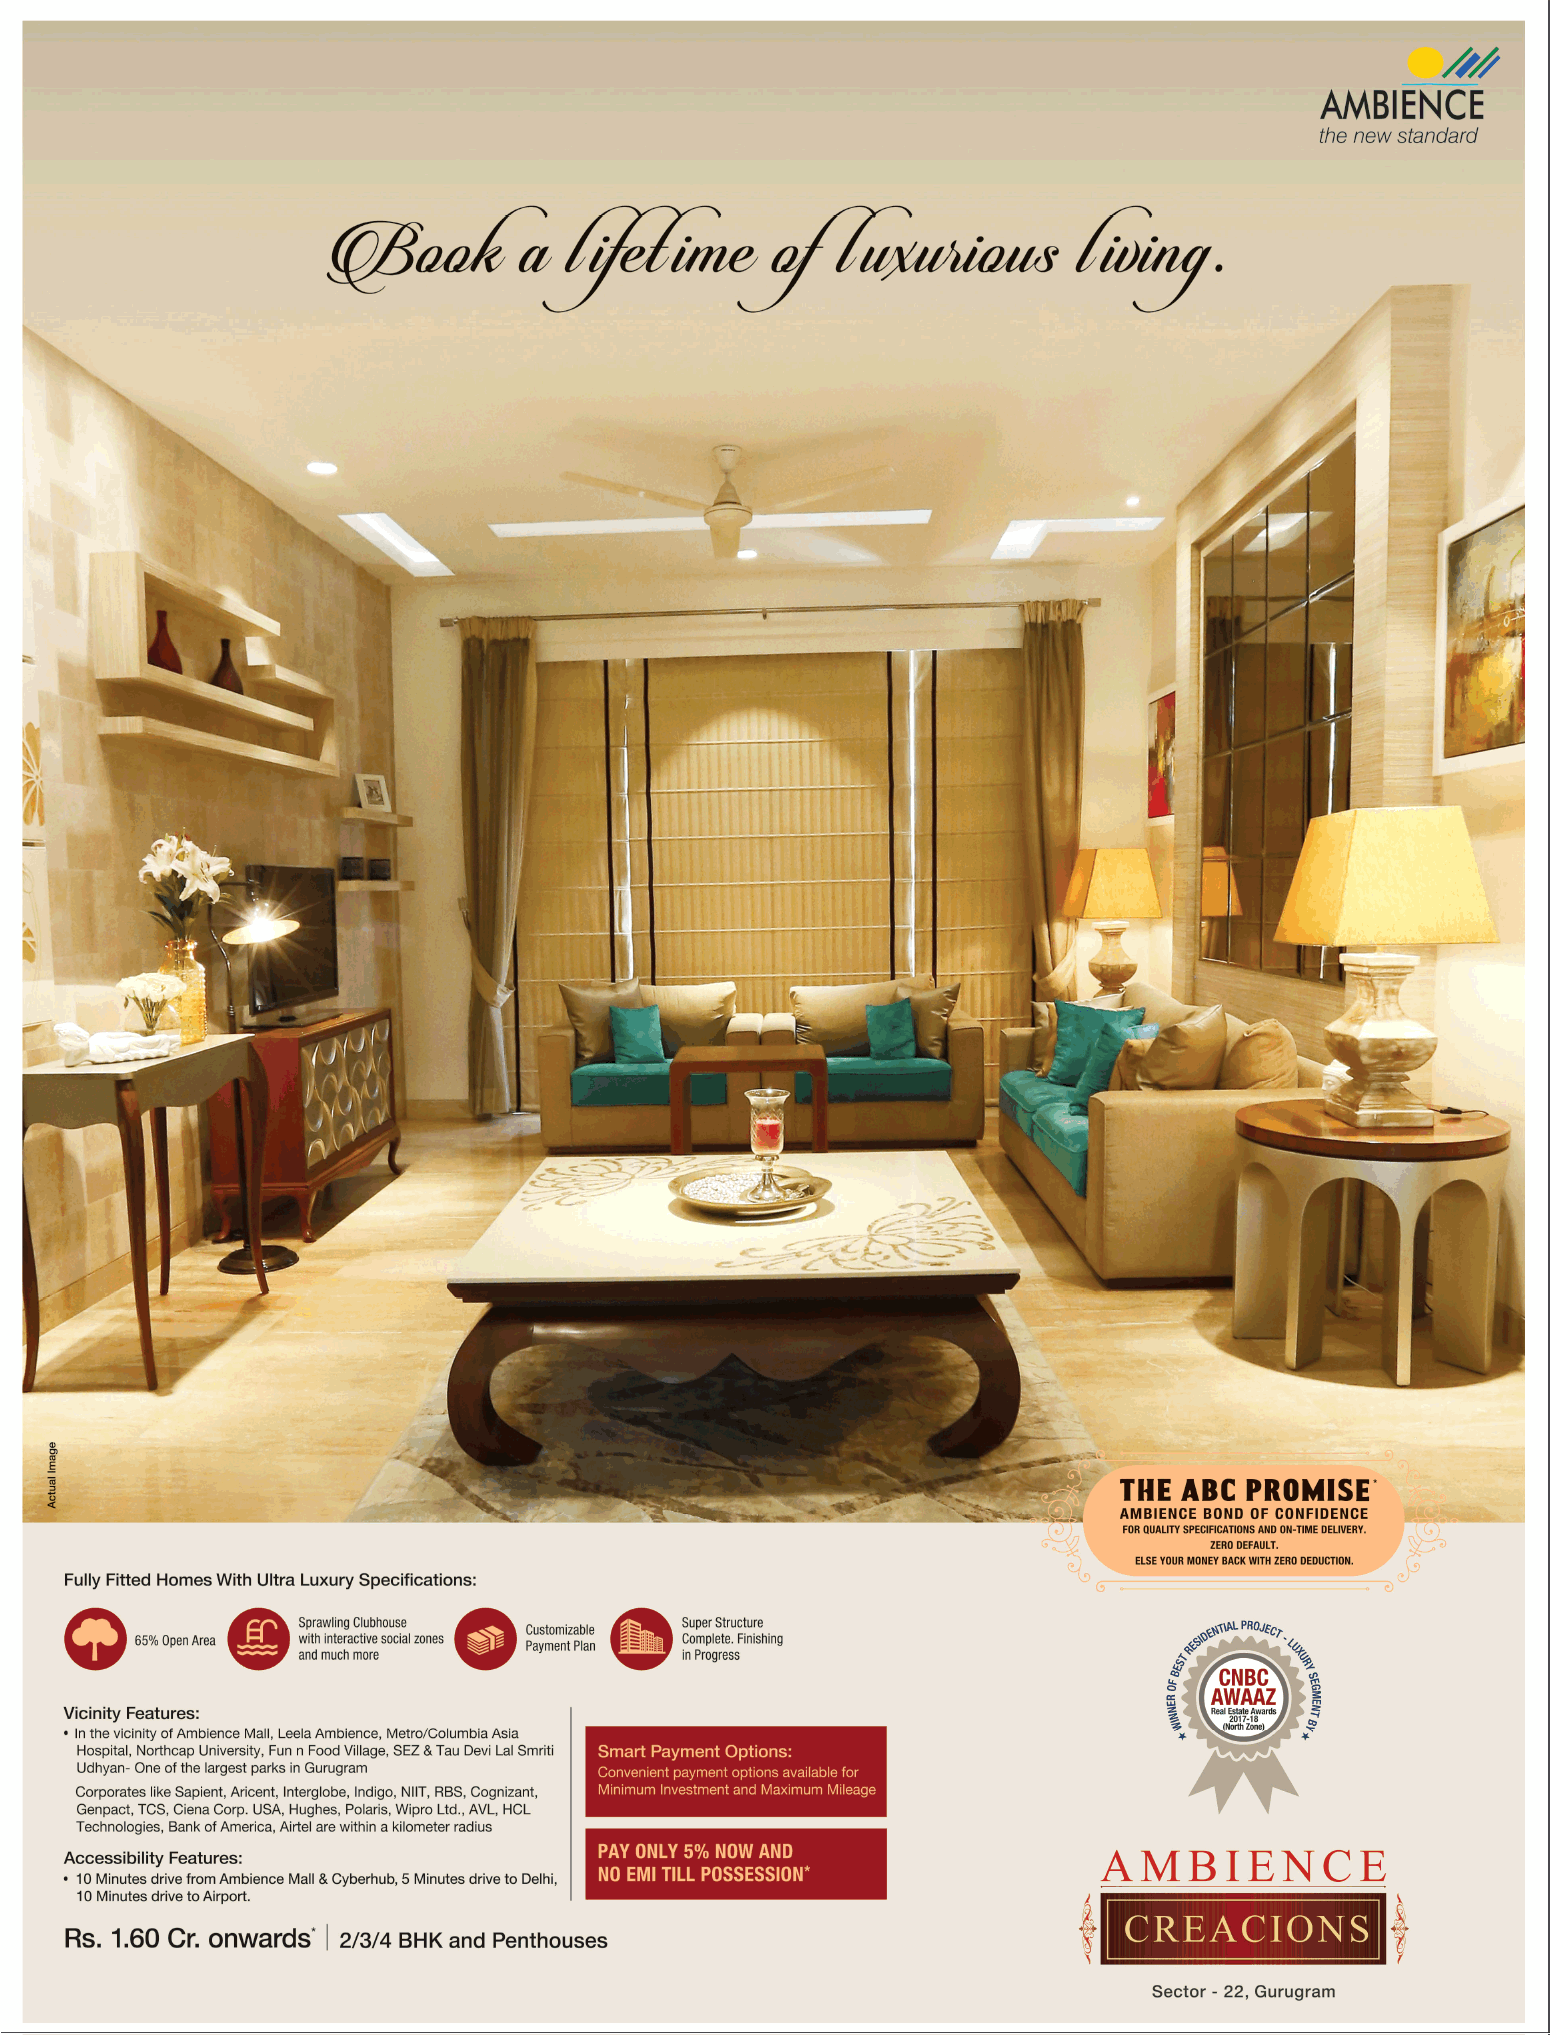 Book fully fitted homes with ultra luxury specifications at Ambience Creacions in Gurgaon